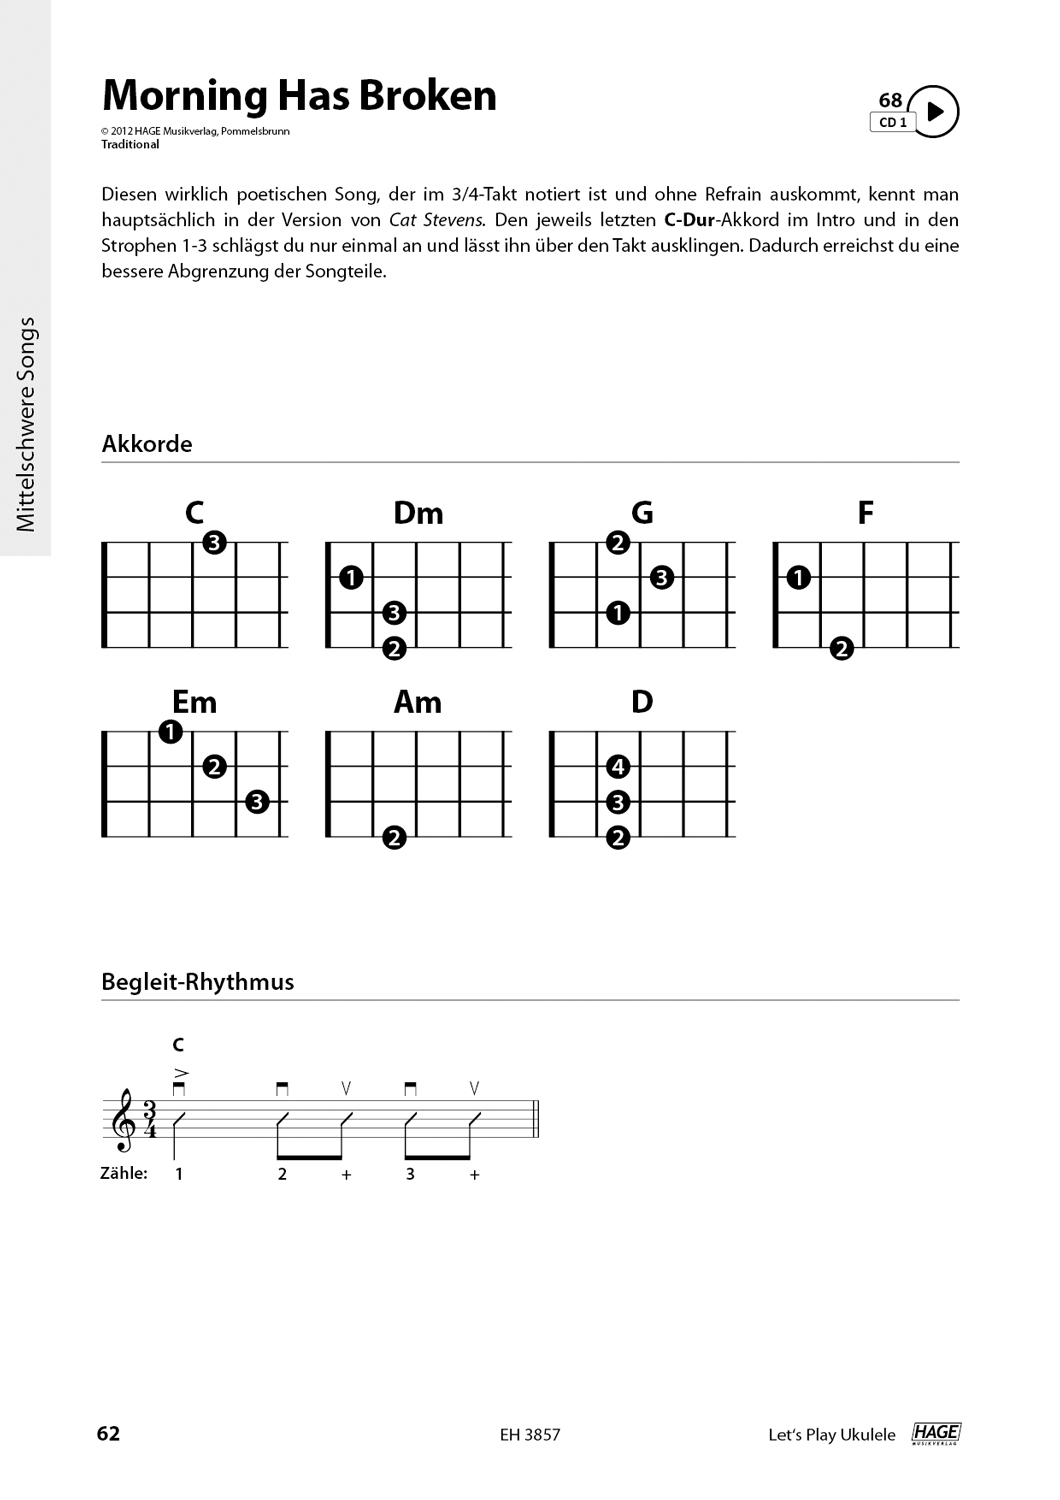 Let's Play Ukulele (with 2 CDs) Pages 8